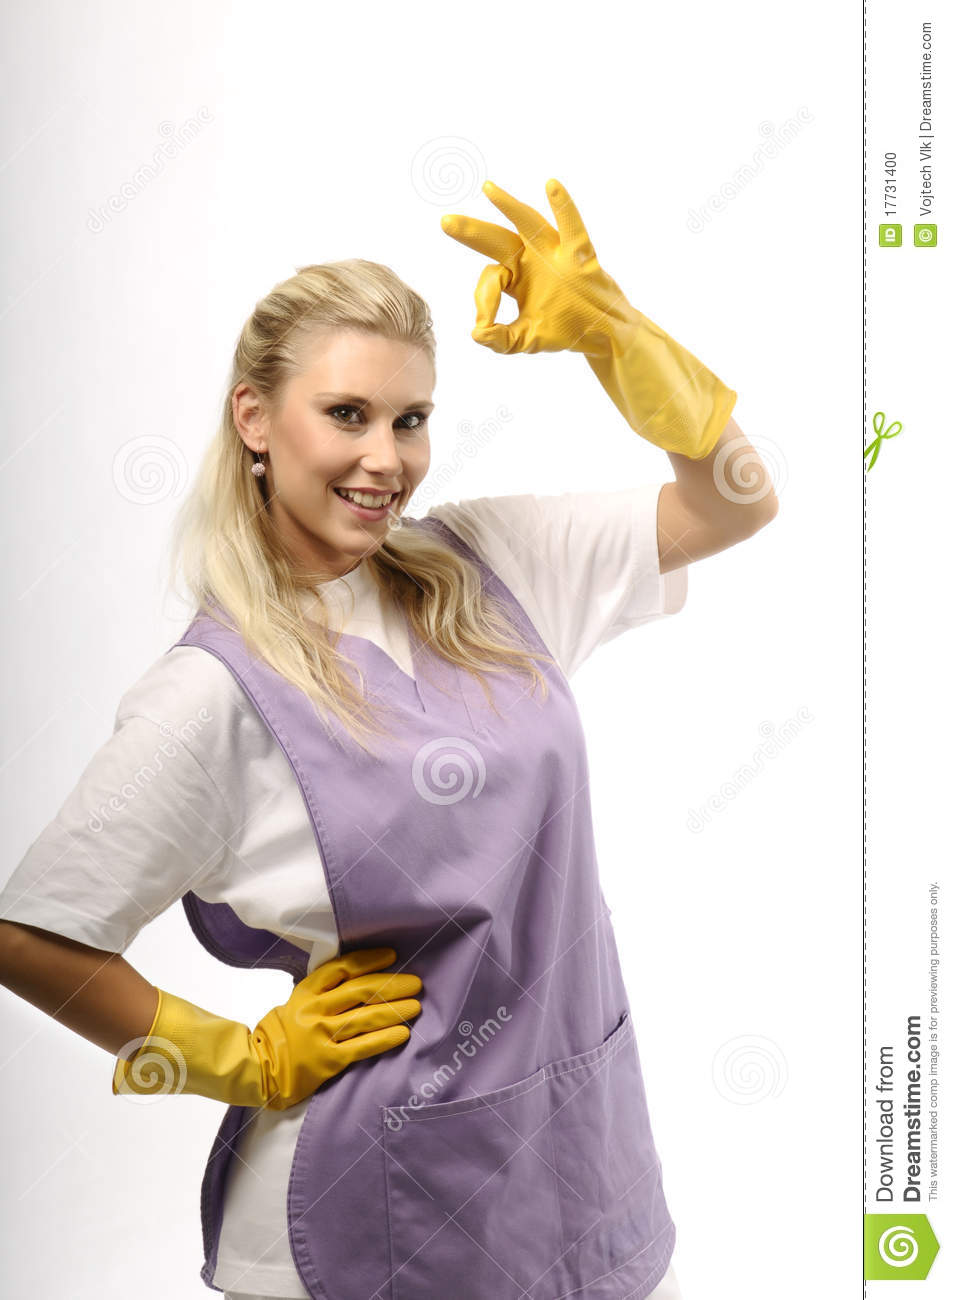 Satisfied Cleaning Lady Stock Photo Image 17731400